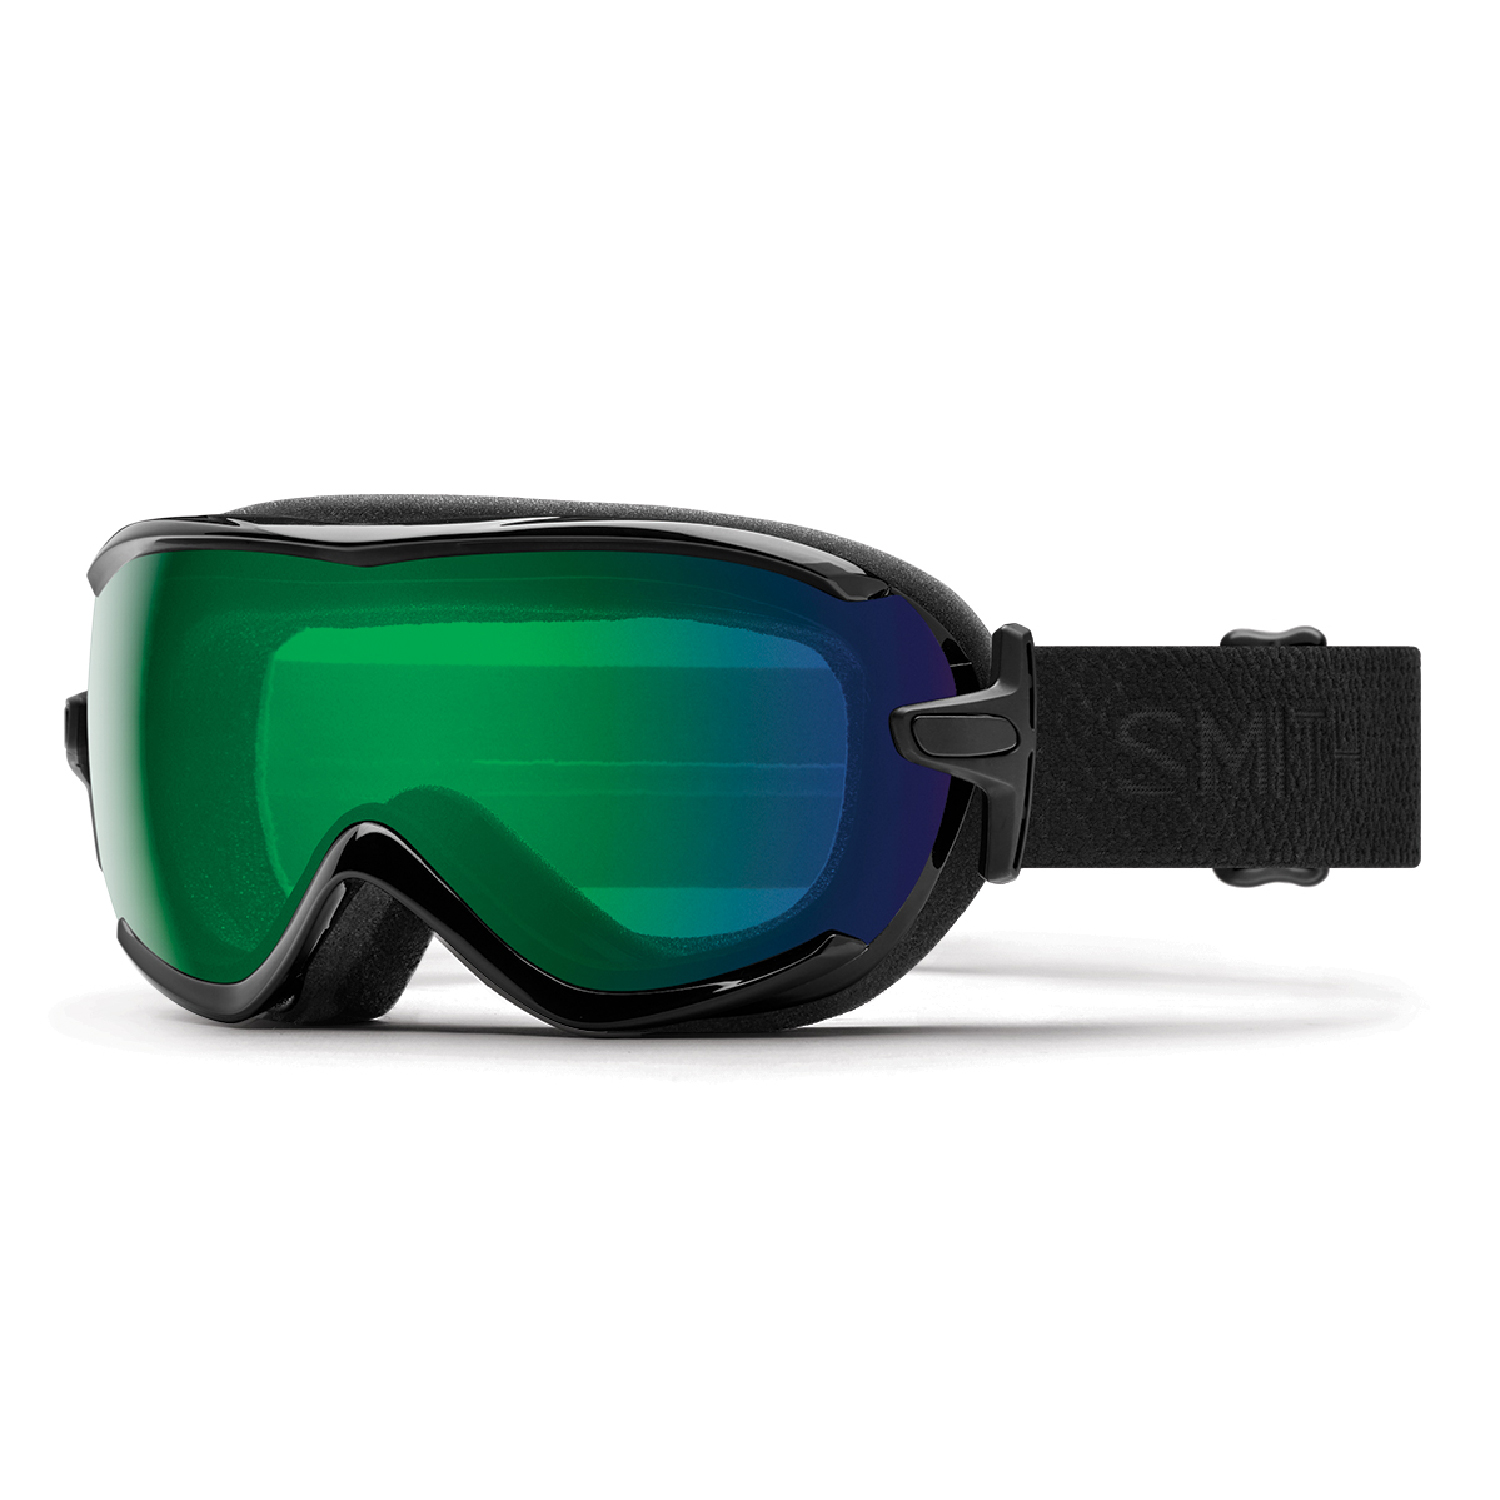 Smith Optics 2018 Virtue (Black Mosaic ChromaPop Everyday Green Mirror) Women's Snowboard Goggles by